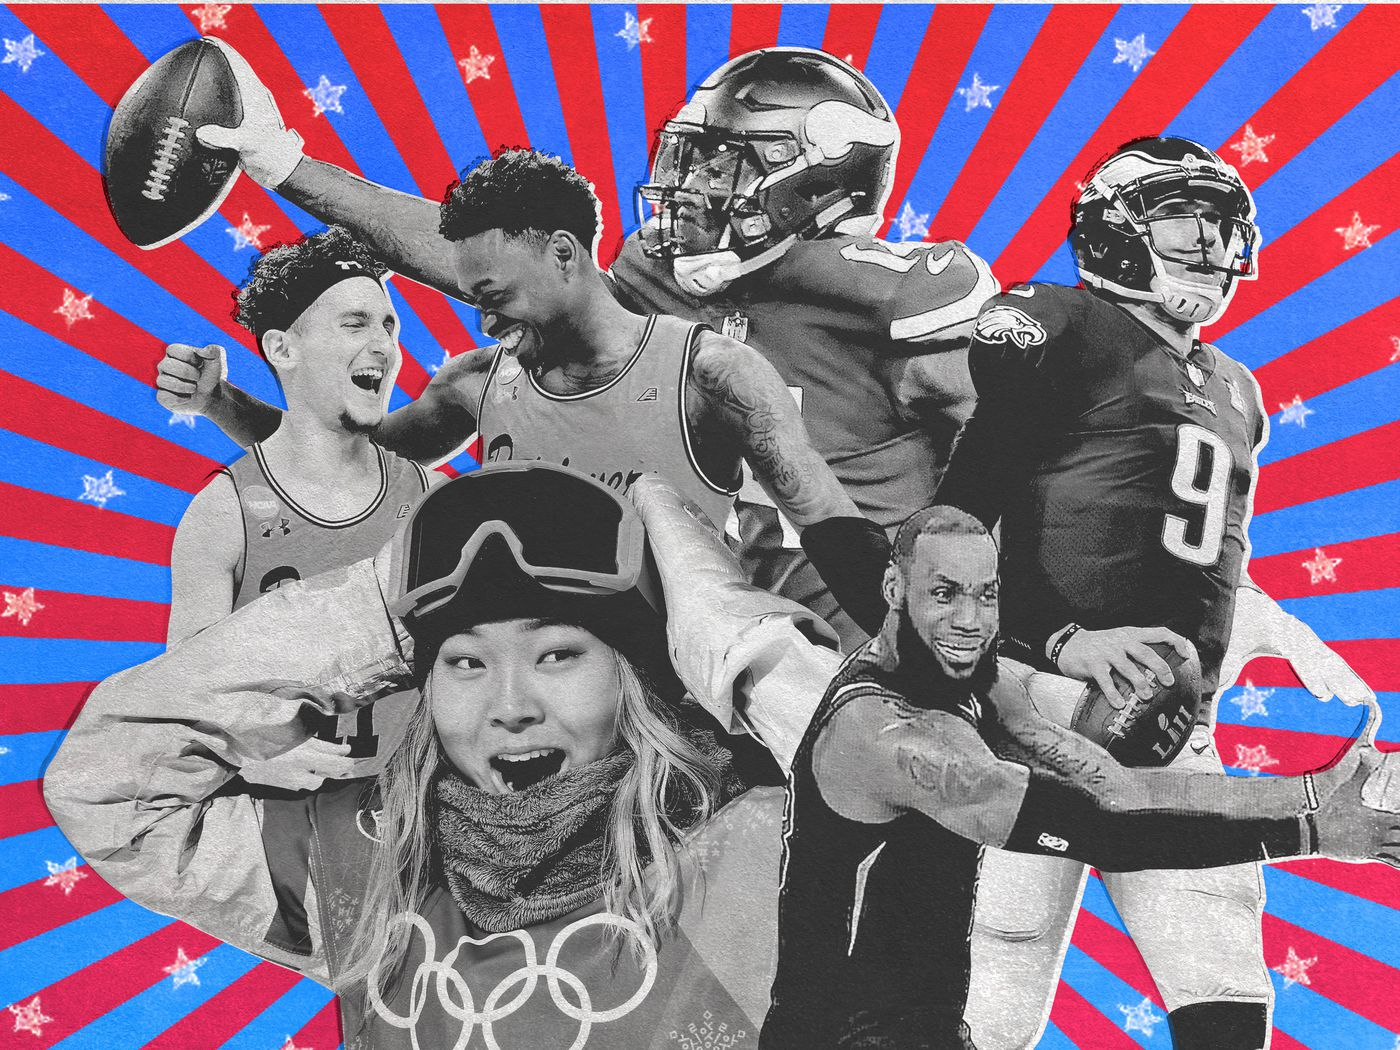 e765dbdd0a49 The Ringer's 45 Favorite Sports Moments of 2018 - The Ringer